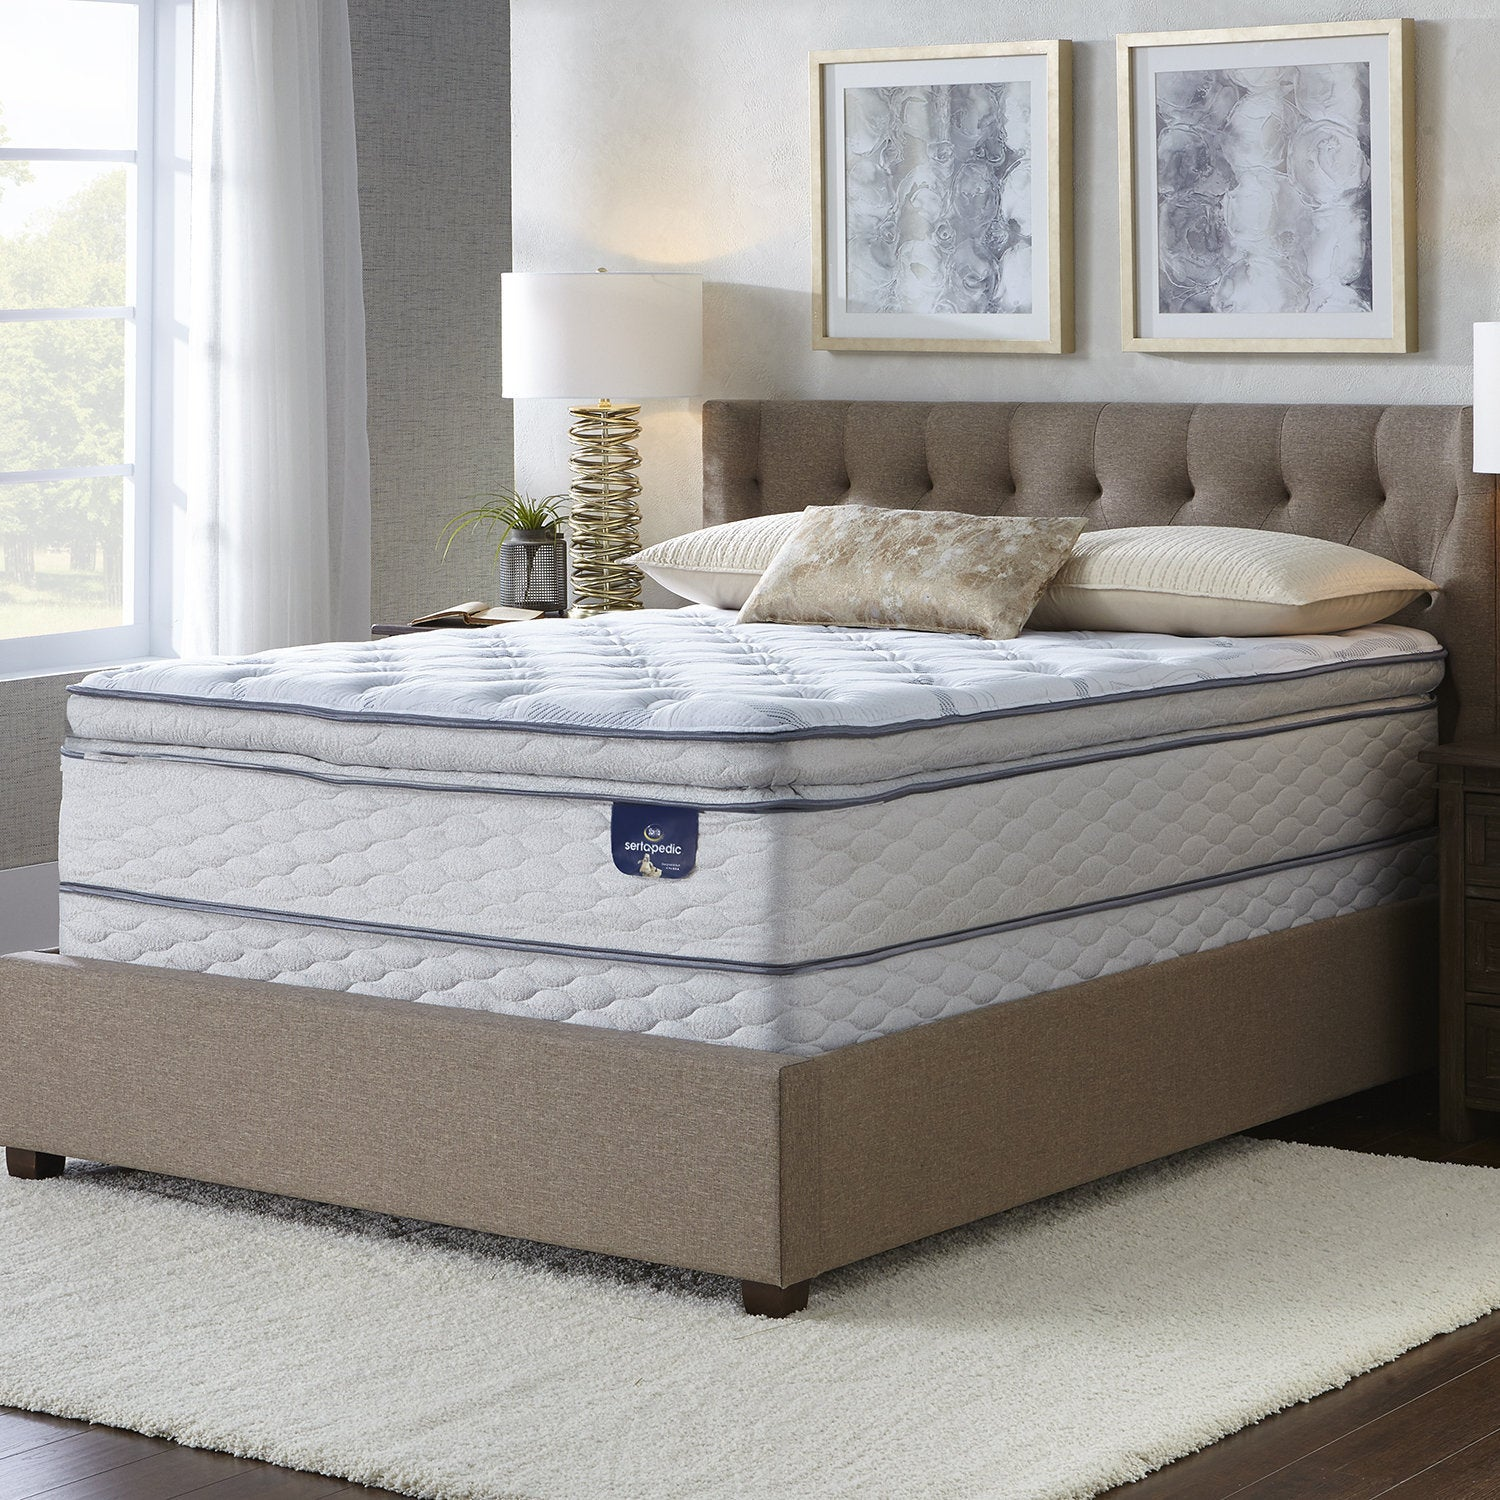 mattress ideas topper pinterest thick pillow pin top pad